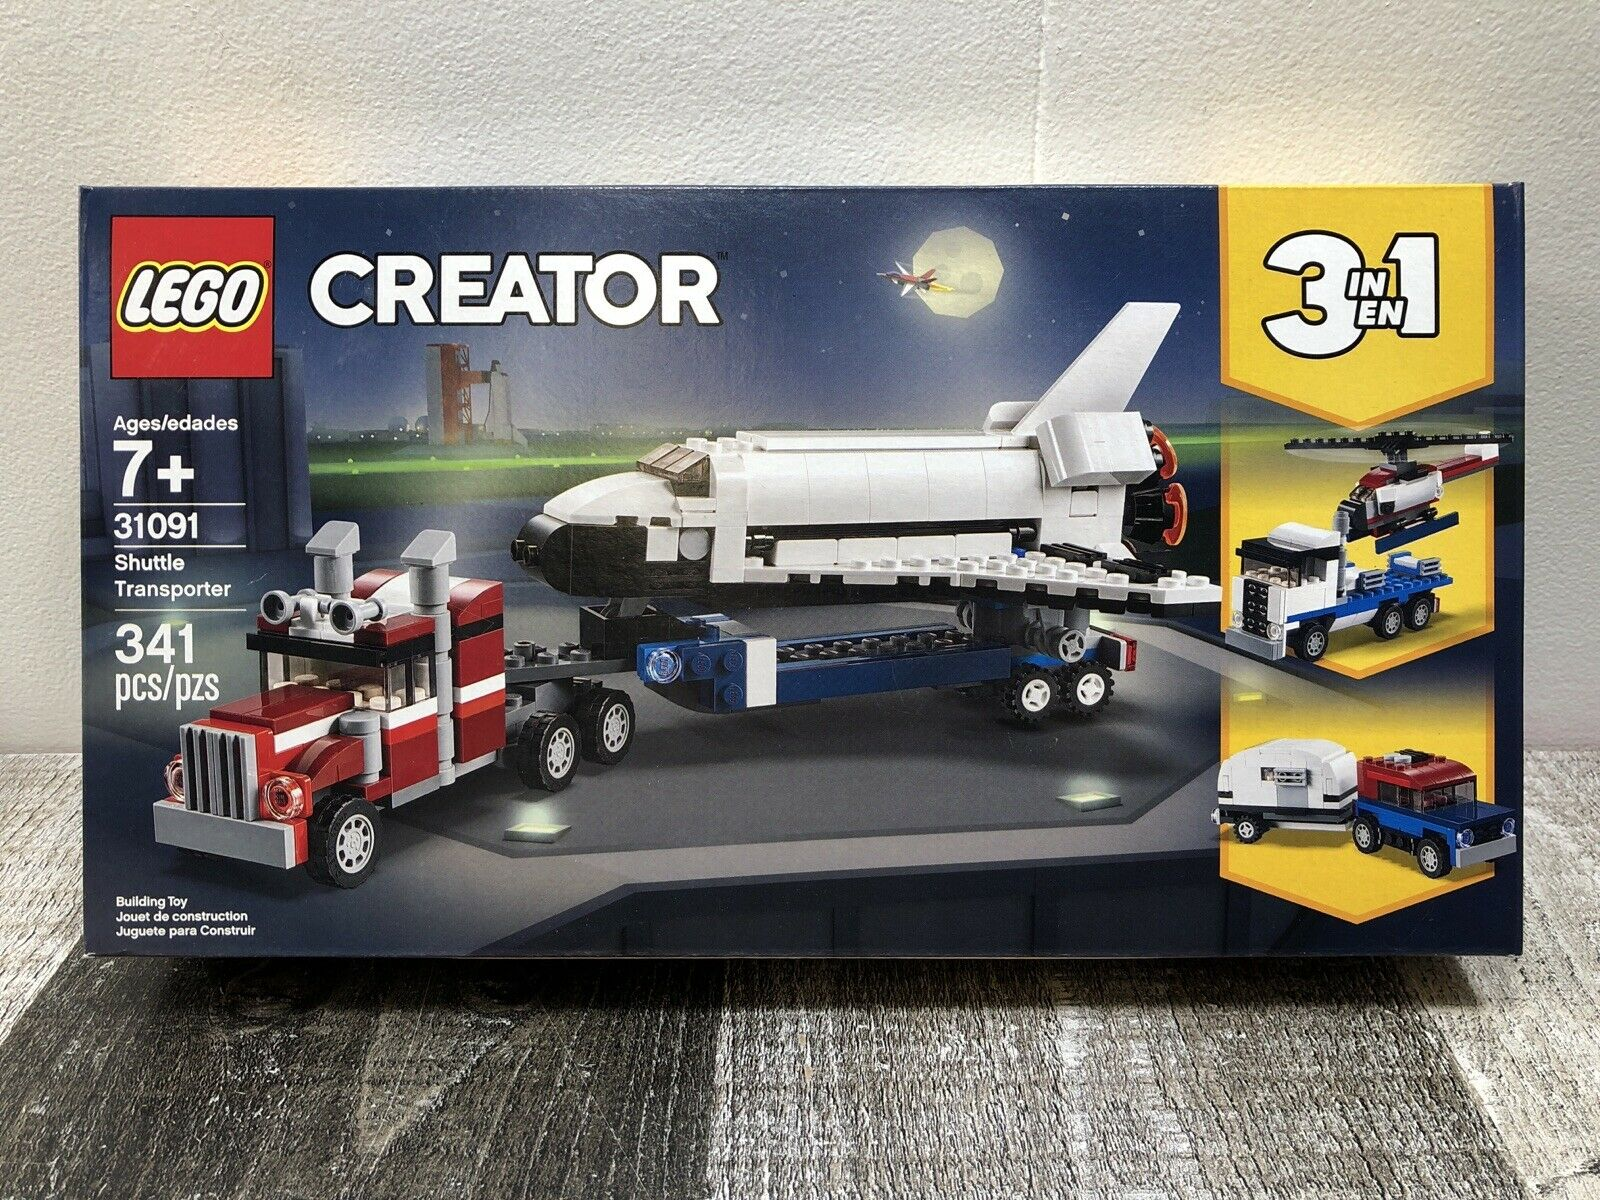 Helicopter Truck /& Trailer 3 in 1 Play Set for Boys LEGO Creator Space Shuttle